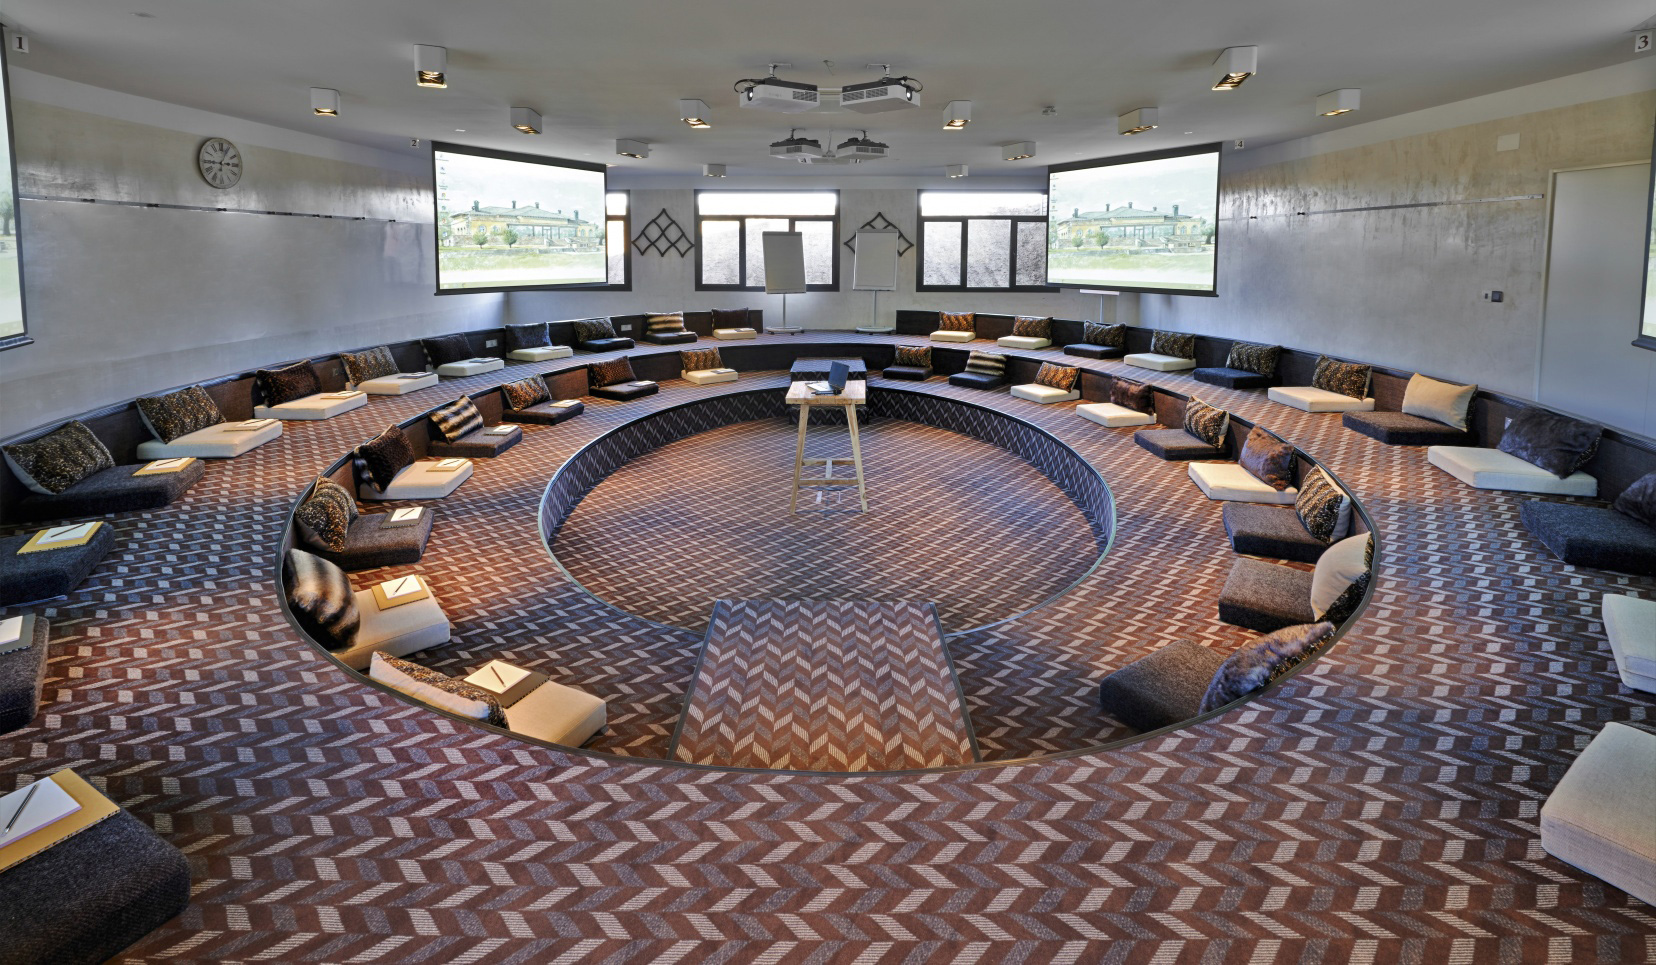 High Tech Conference Room Design